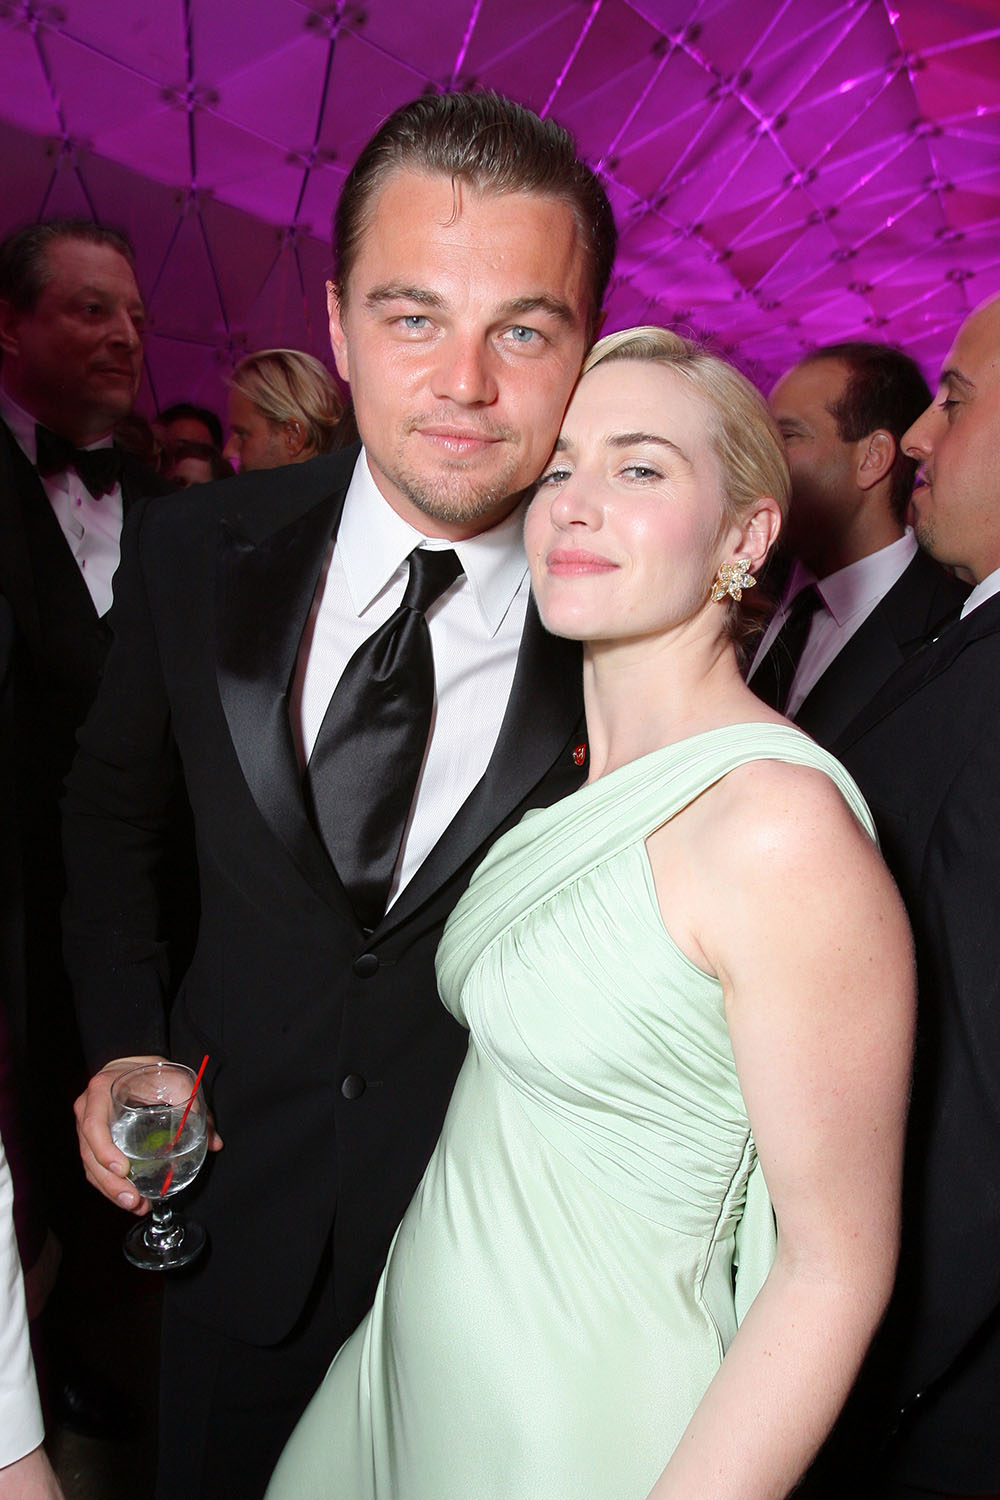 Kate and Leo at the 2007 Academy Awards